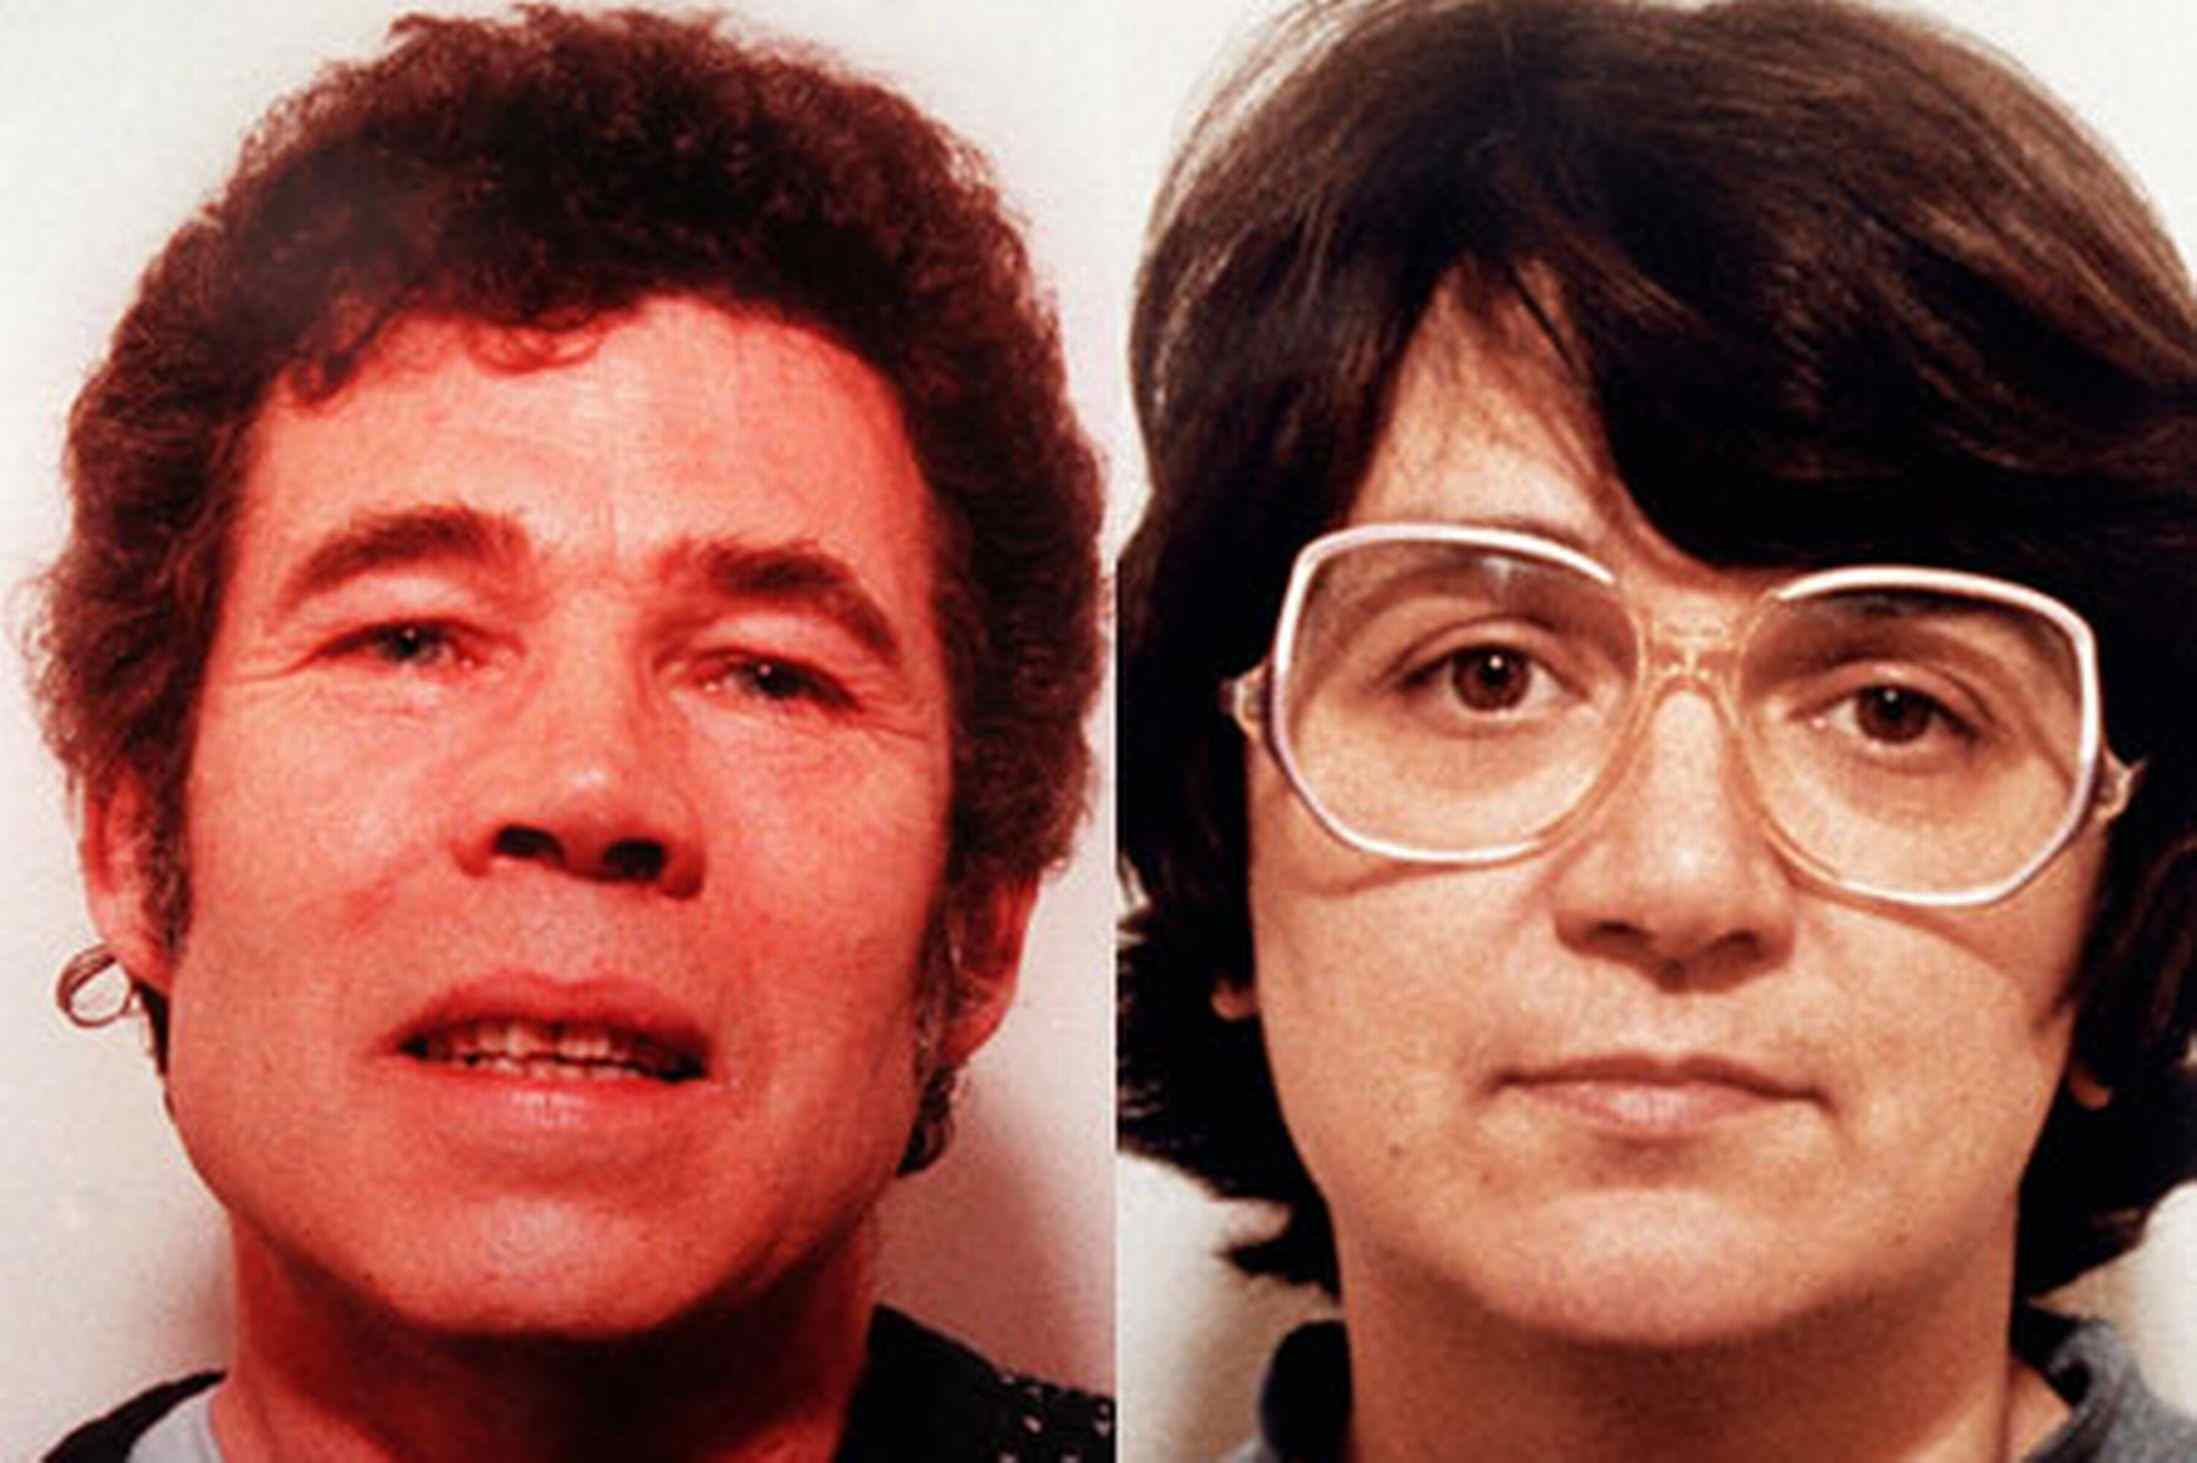 the notorious fredrick and rosemary west who killed a number of women in their home.